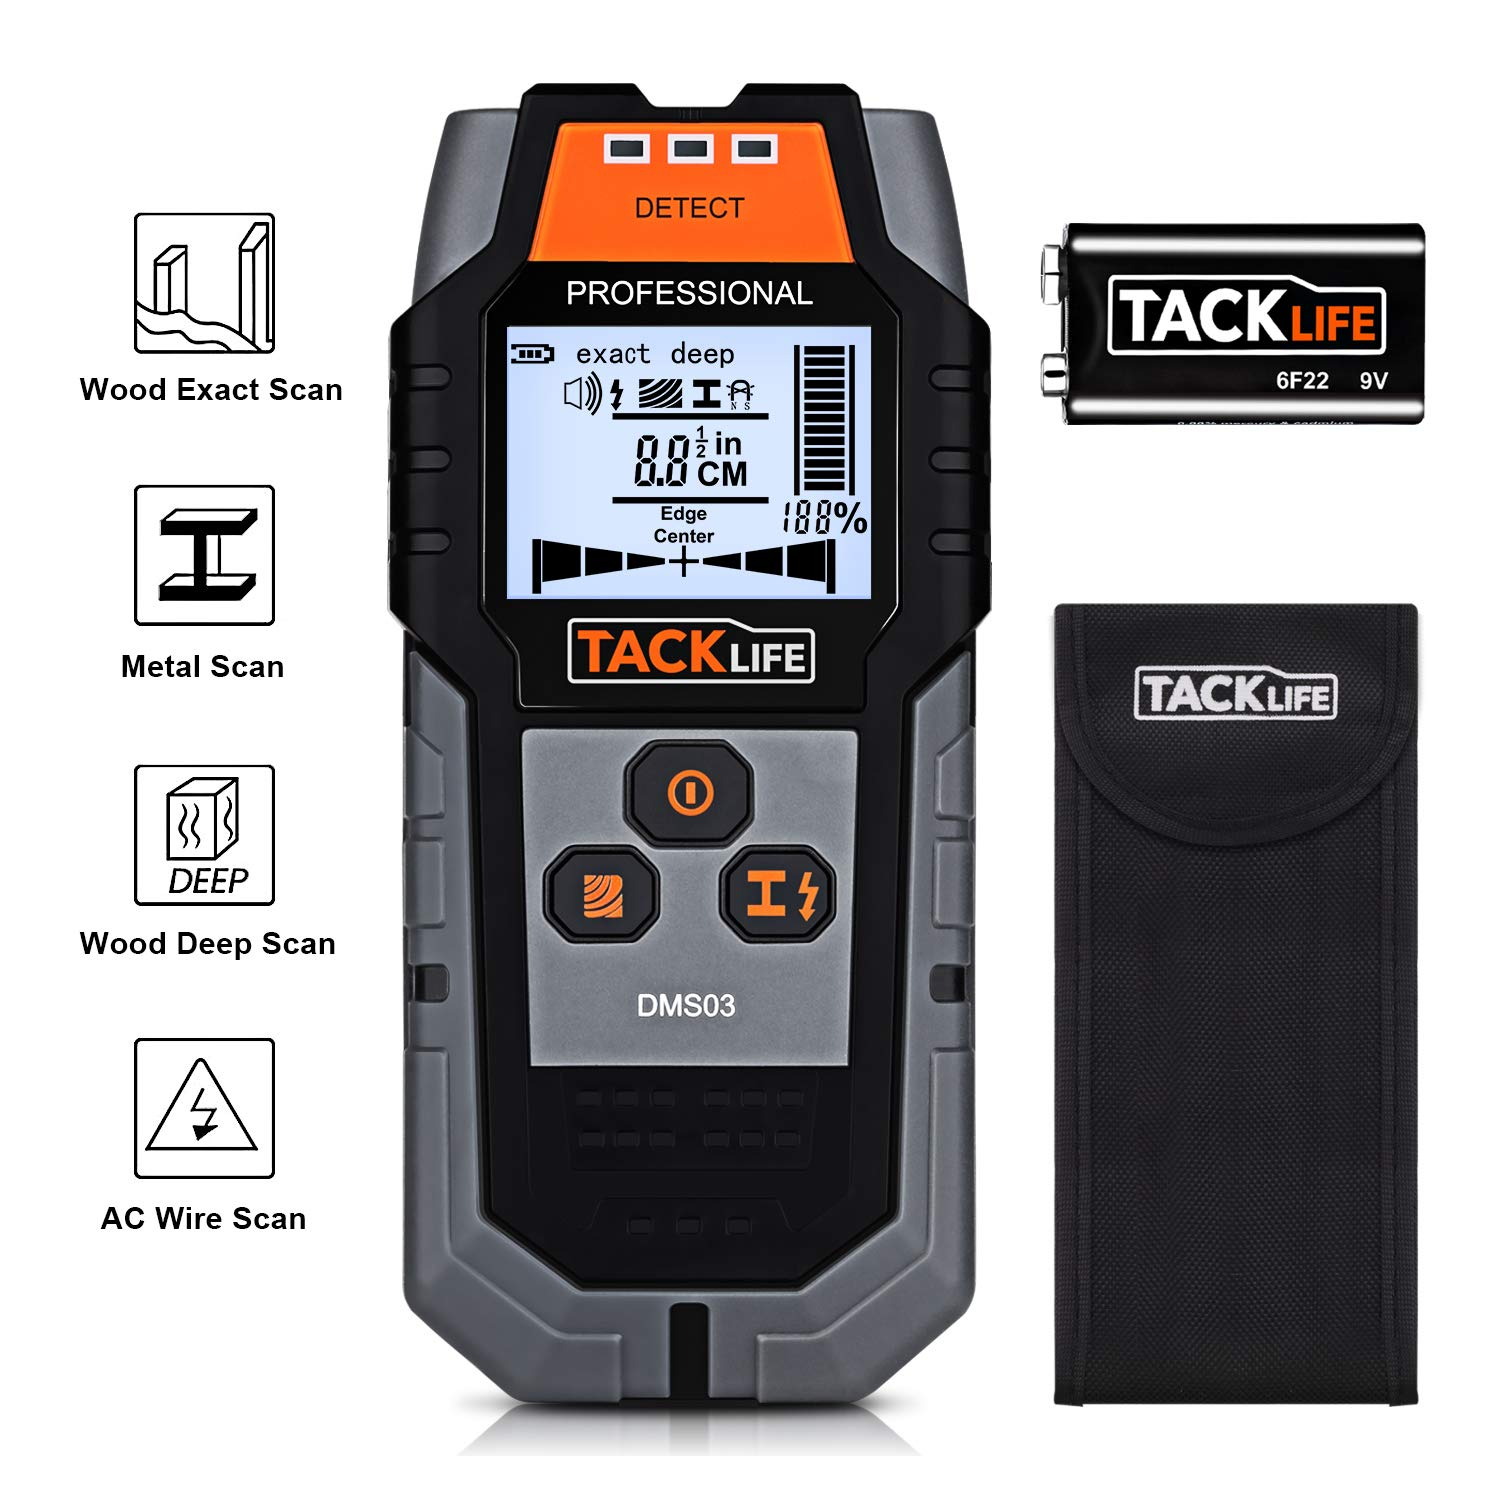 TACKLIFE Stud Finder Wall Scanner, 4 in 1 Center Finding Electronic Wall Detector Finders with Sound Warning, Four Scan Modes for Wood Stud/Metal/Live AC Wire/ Deep Detecting - DMS03 by TACKLIFE